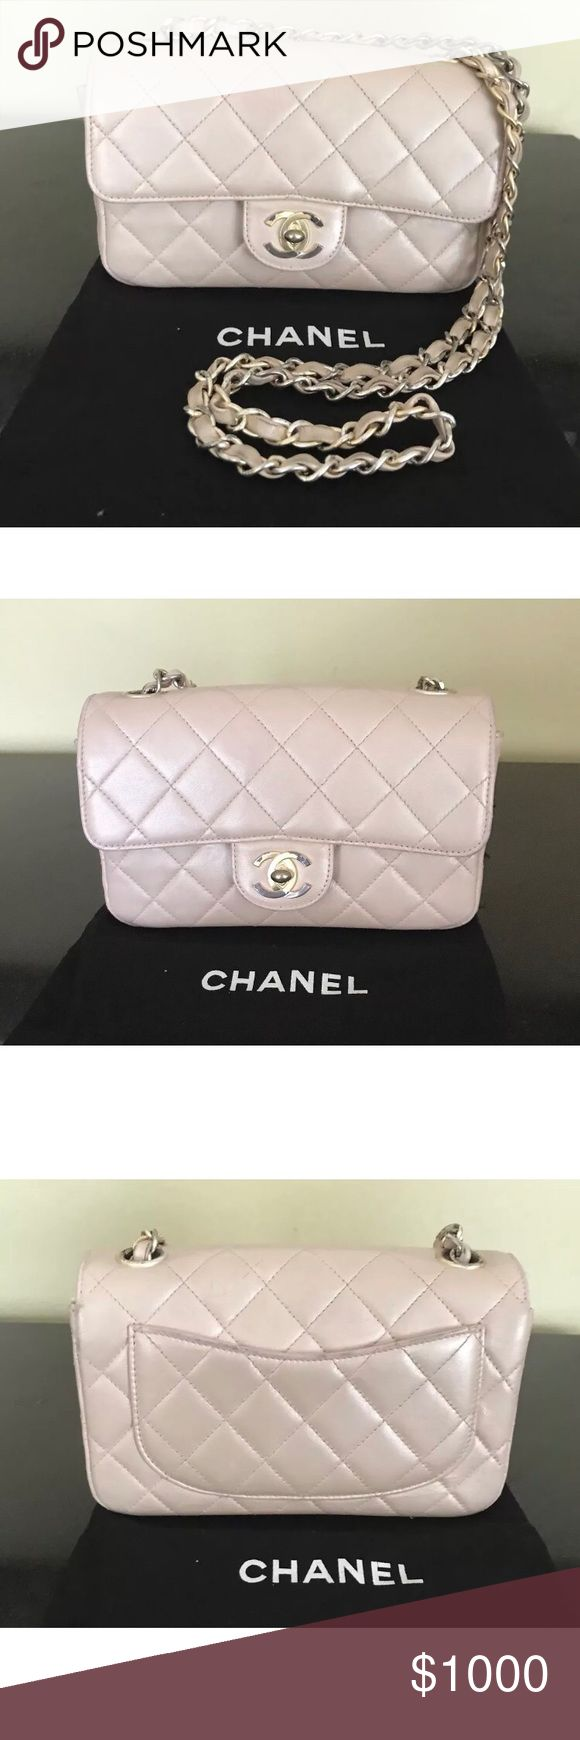 Authentic Chanel iridescent pink small flap Bag!!! 100% Authentic Chanel Pink Small Flap Bag   Please read details and ask questions.   The gold matte hardware is special and was part of their special edition. However, the matte gold hardware has faded in some spots and lost gold luster (see pic). The hardware is NOT chipped but faded in color. It has a magnet closure rather than traditional turn lock closure. I have noticed only the vintage collection and special edition collection offer…